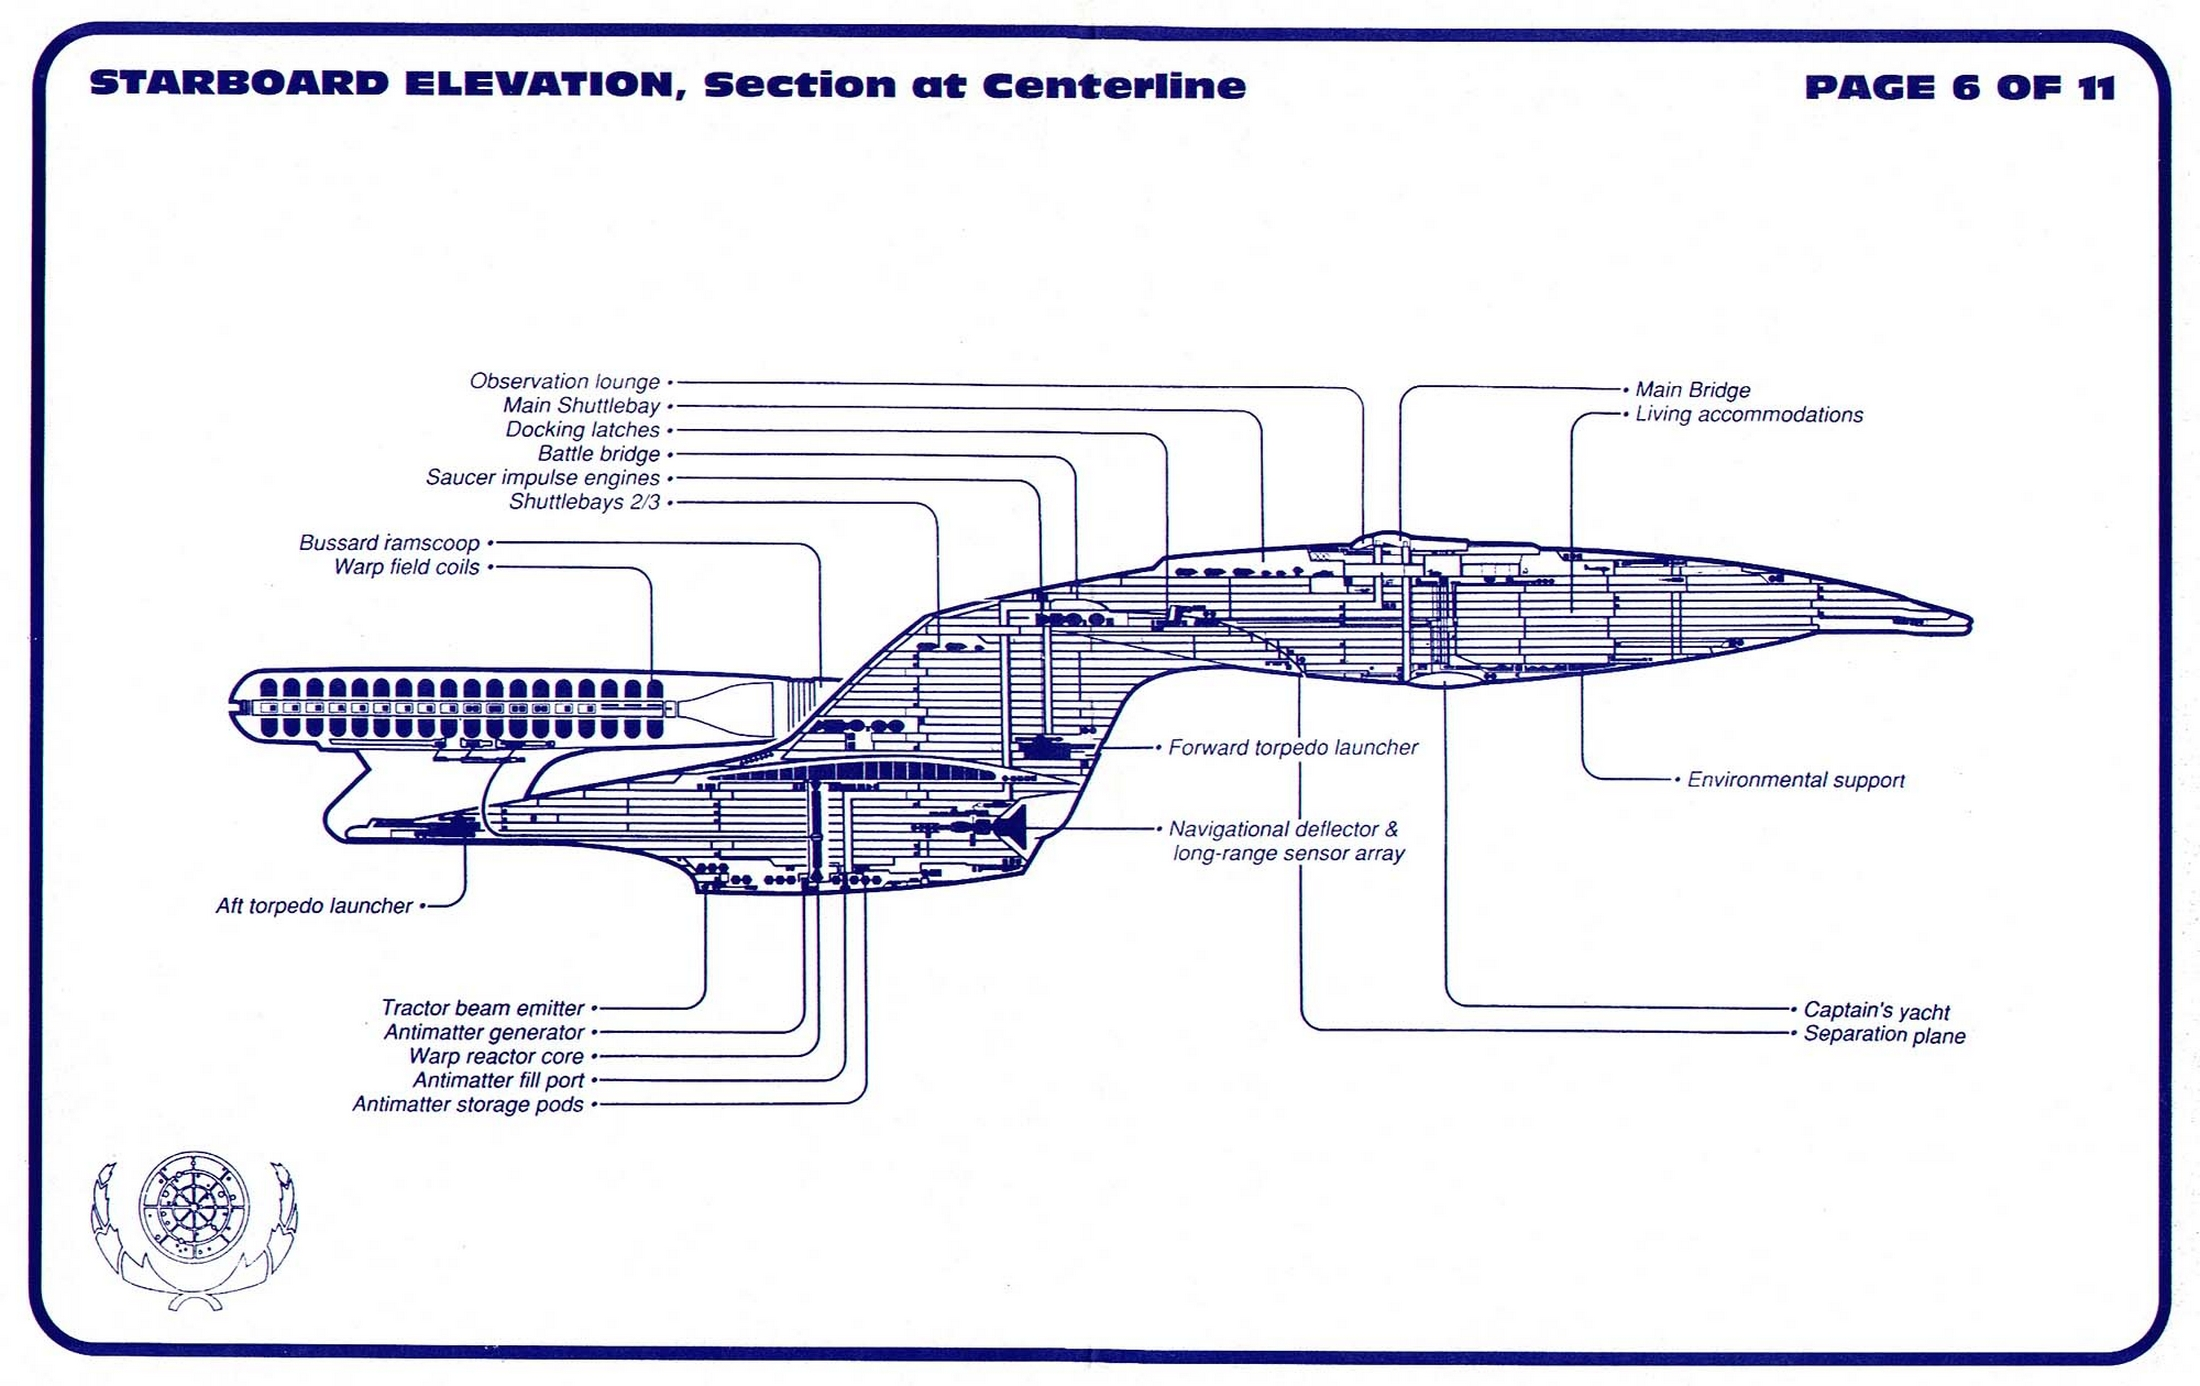 Star Trek USS Enterprise NCC 1701 D Blueprints Schematics Ncc D Schematics on